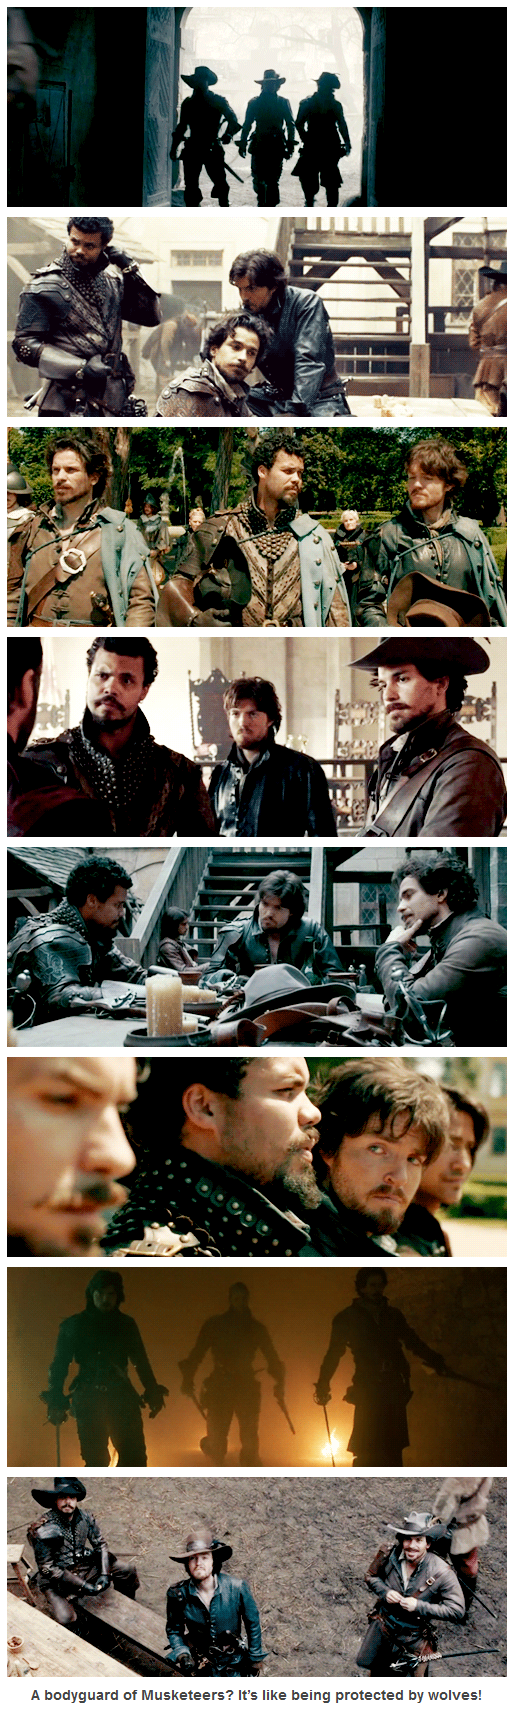 The Musketeers - 'Protected by wolves' Athos, Porthos  Aramis